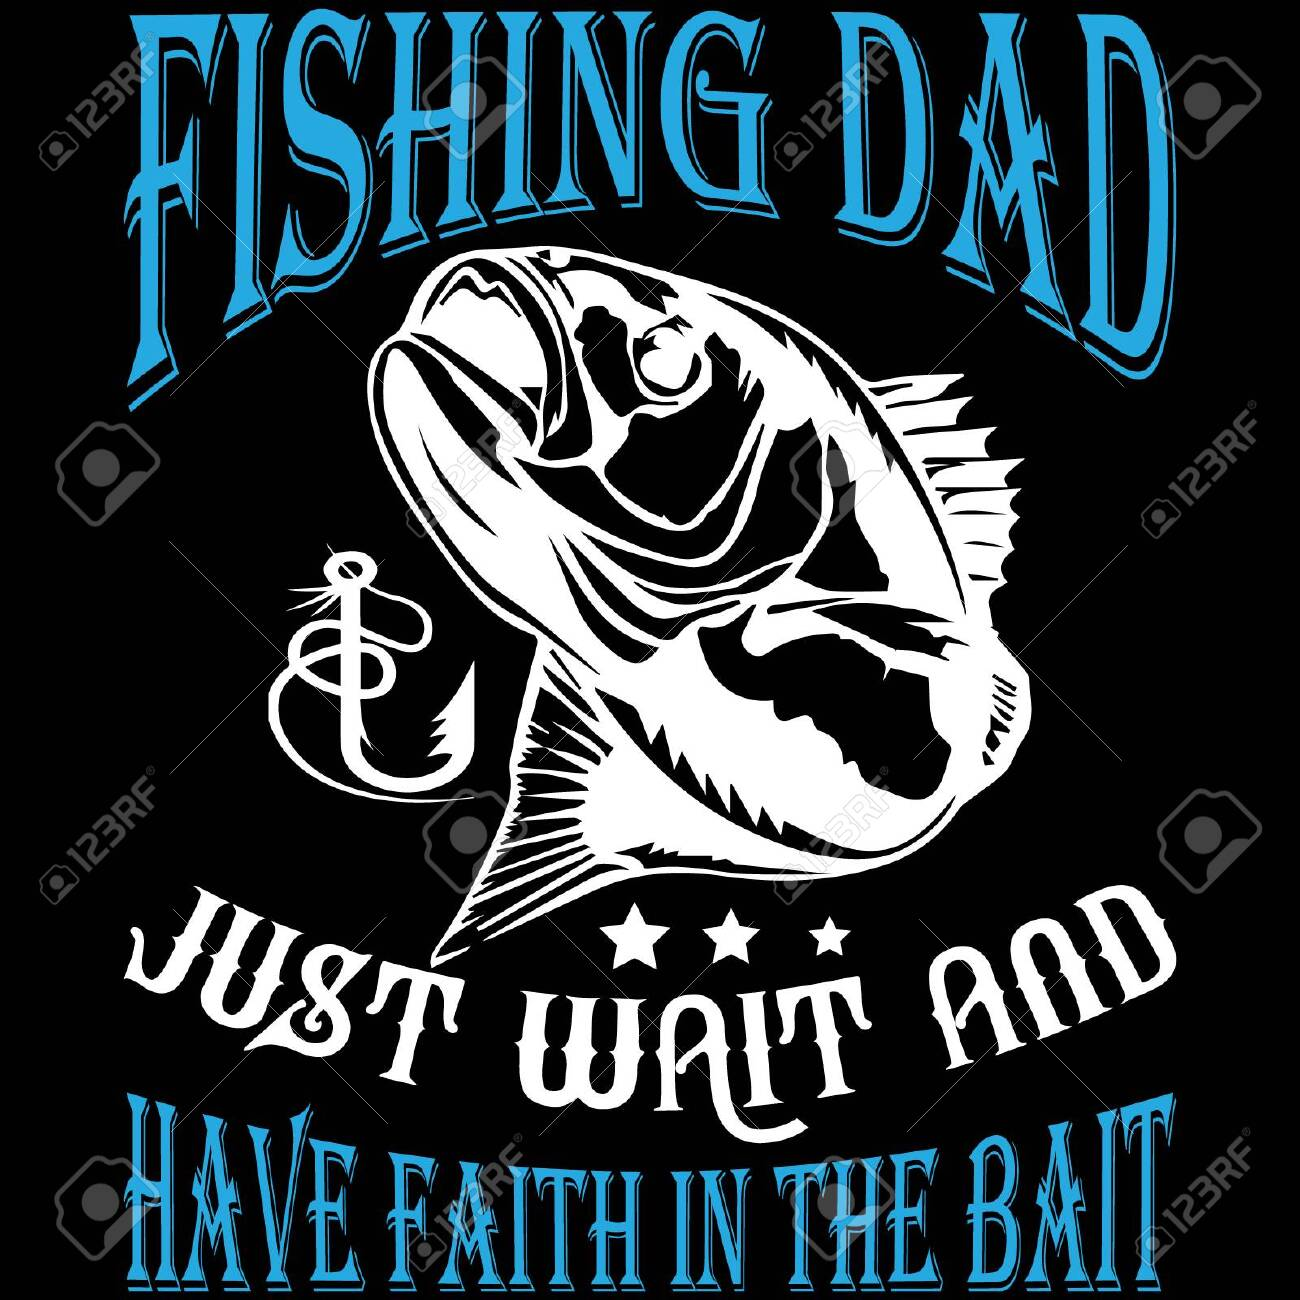 Fishing Dad Just Wait And Have Faith in The Bait ... Fishing T shirt - 143287305